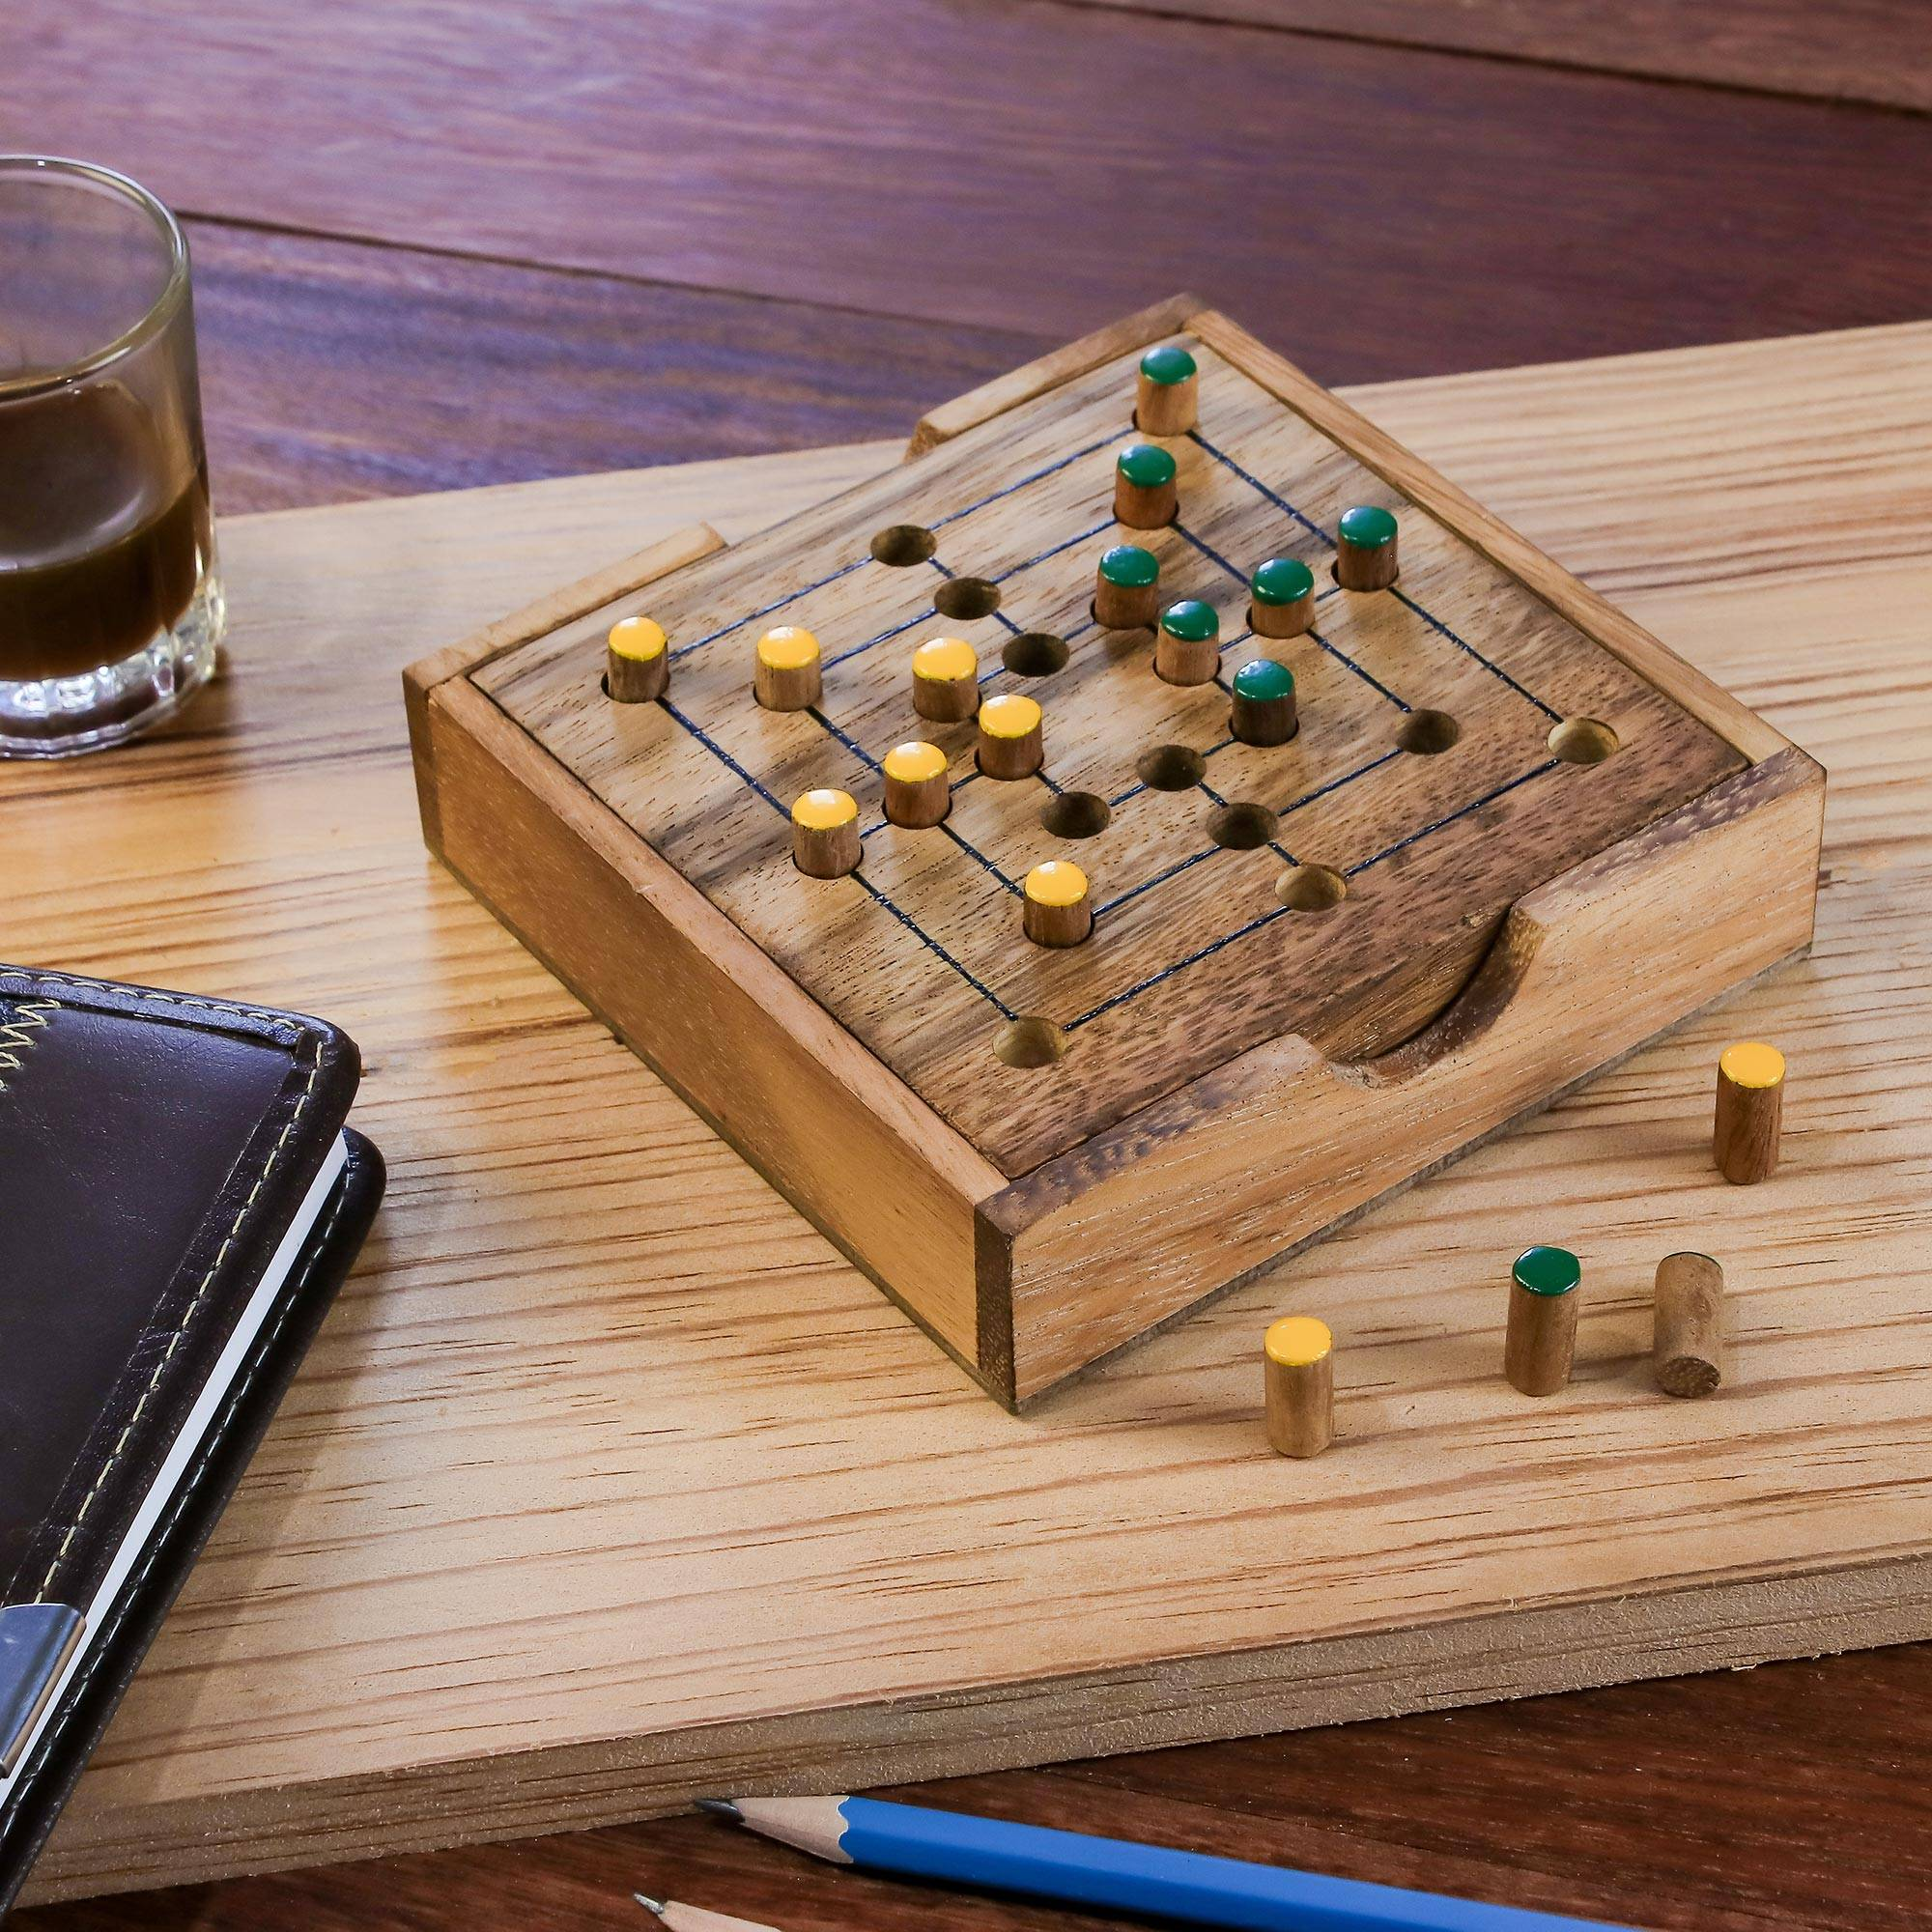 Hand Made Wood Pegs Board Game From Thailand Strategy Square Novica